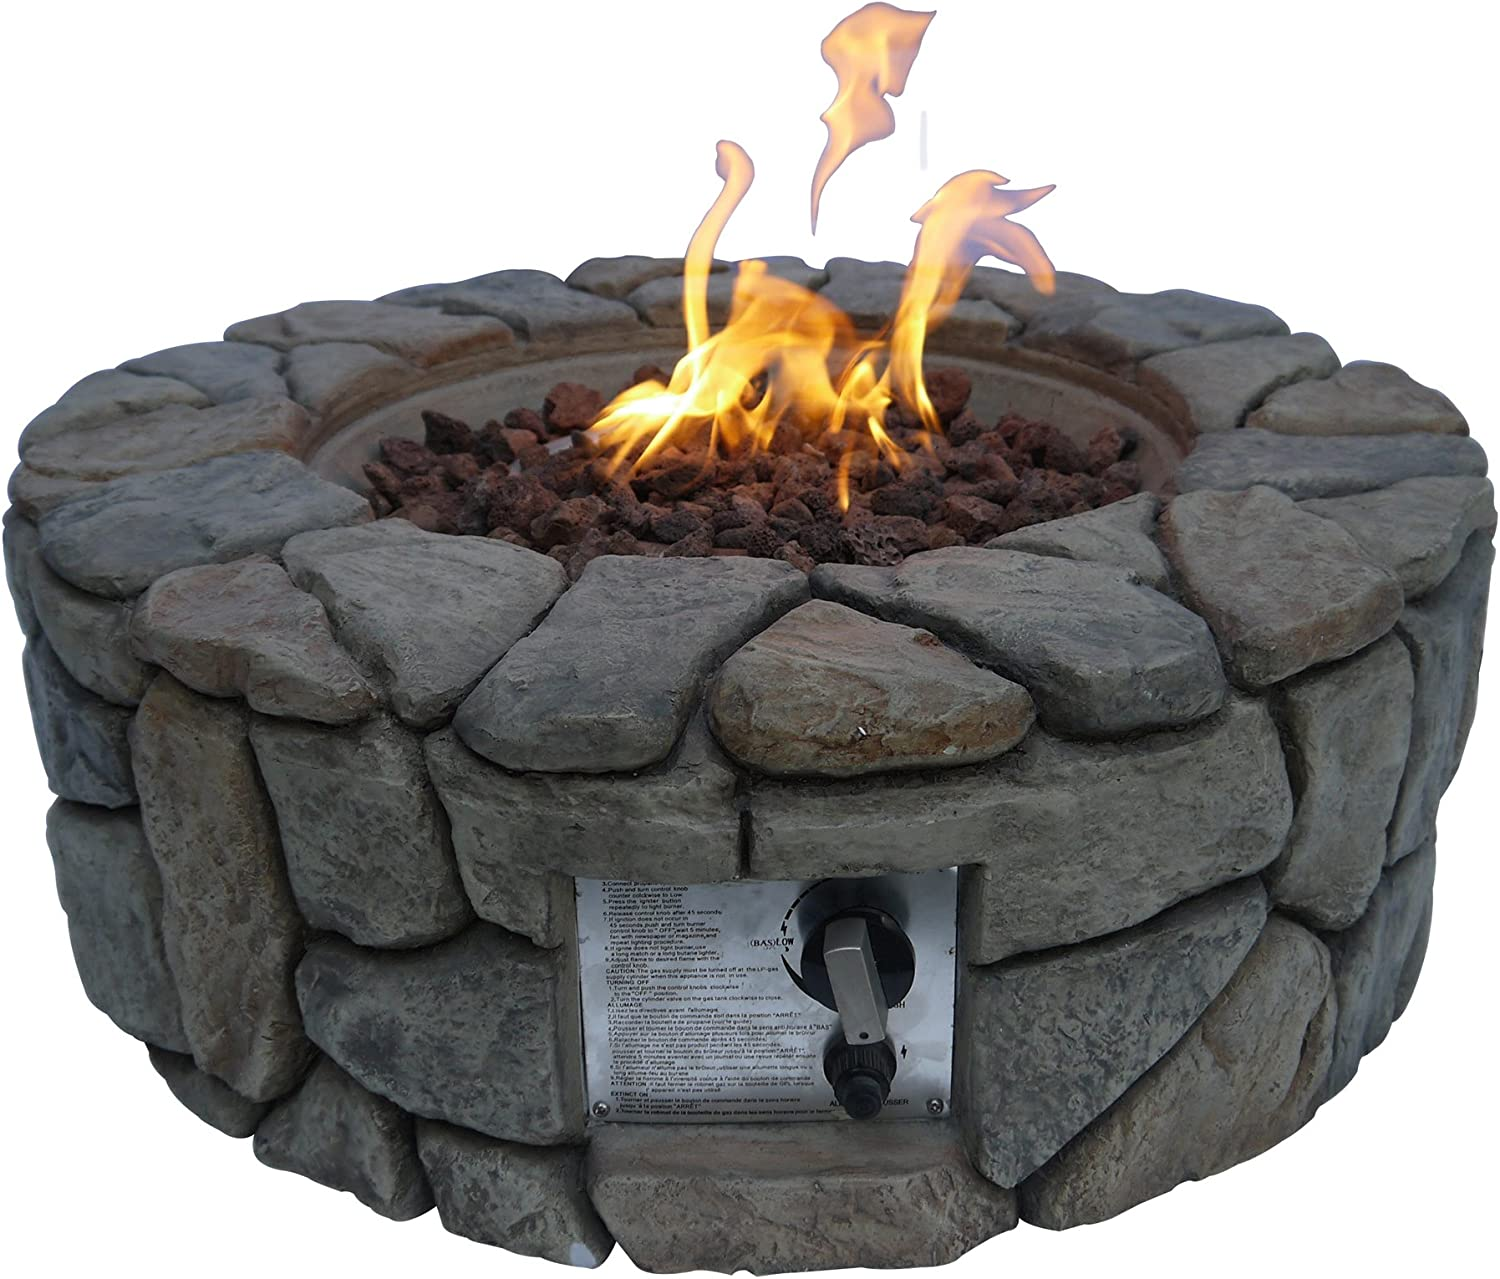 "Peaktop HF09501AA Round 40,000 BTU Propane Gas Fire Pit Stone Look for Outdoor Patio Garden Backyard Decking with PVC Cover, Lava Rock, 28"" x 28"", Gray"